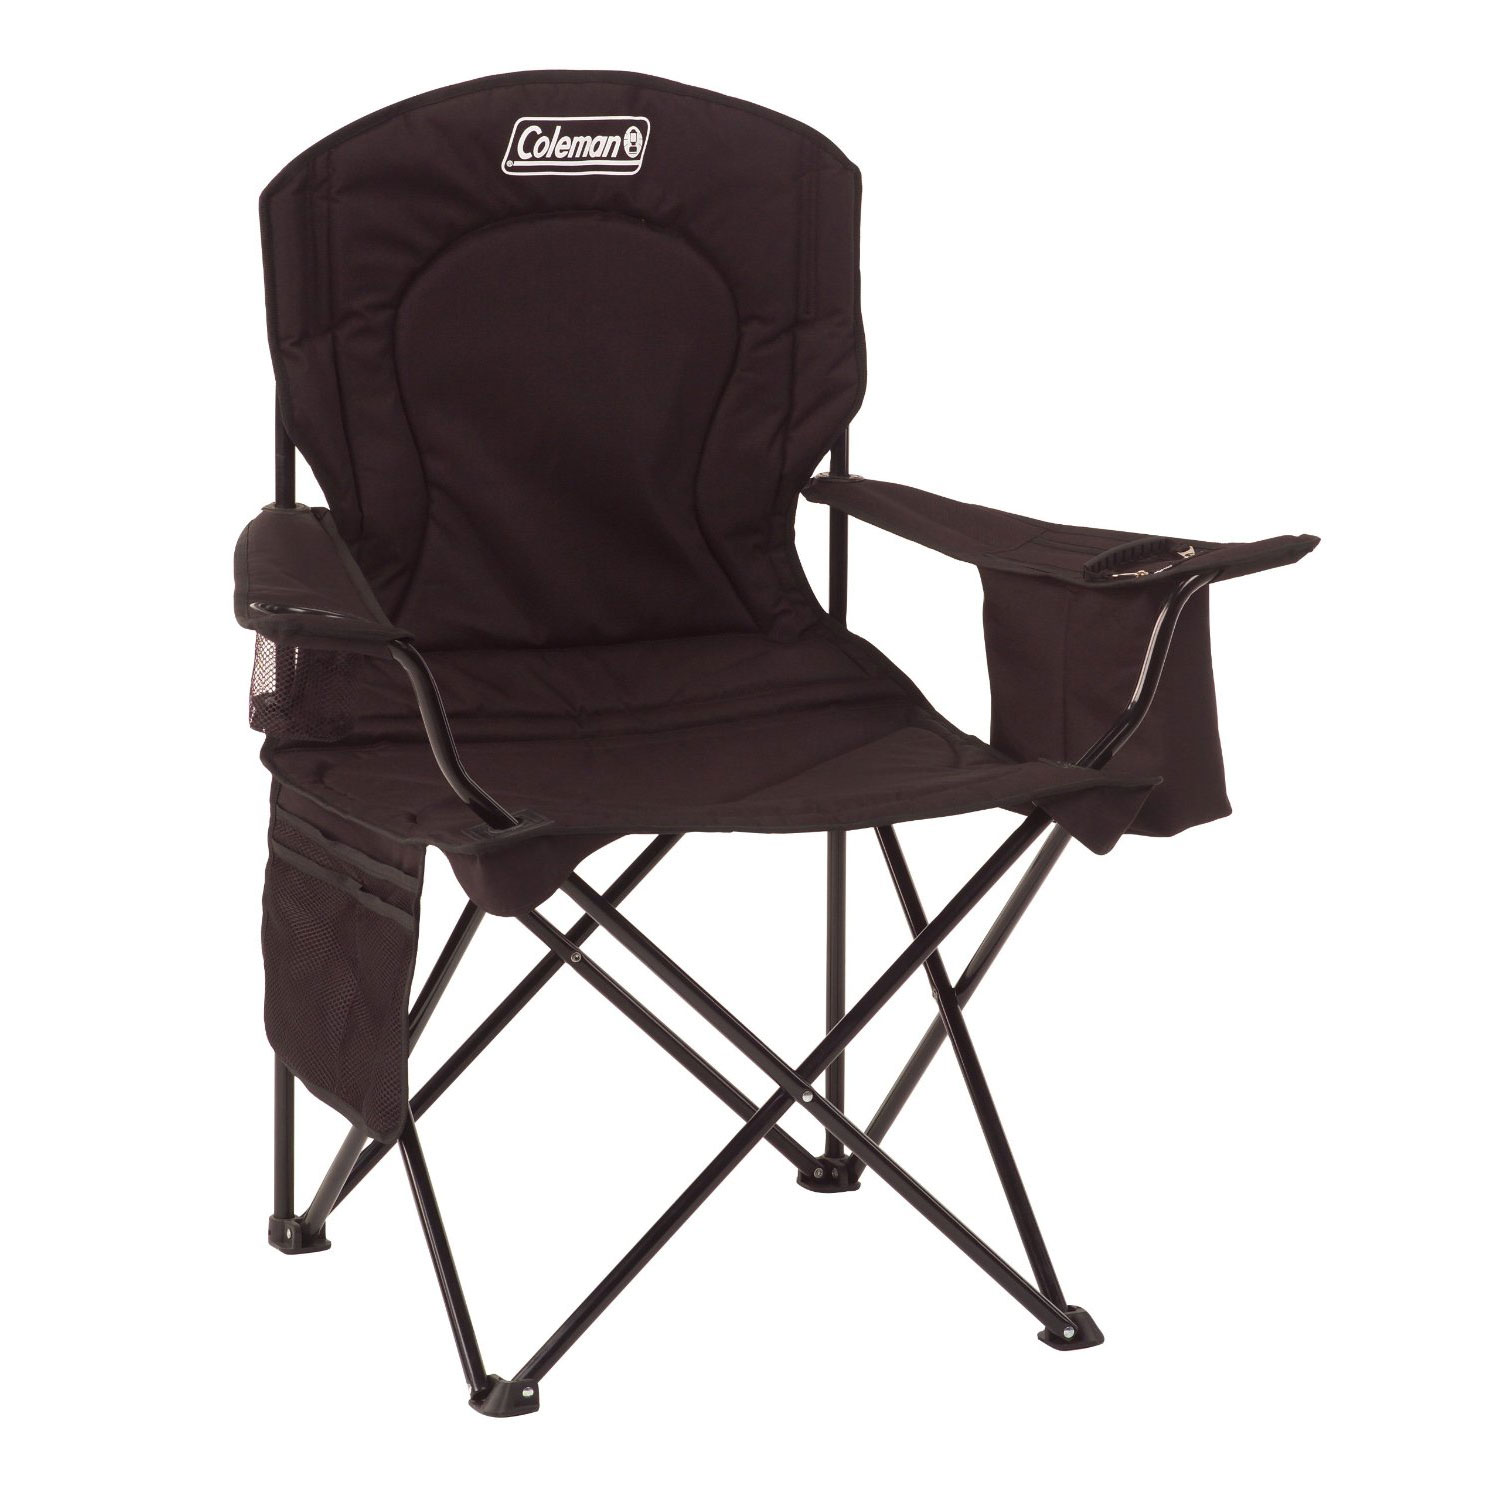 Coleman Oversized Folding Camping Chair With Cooler